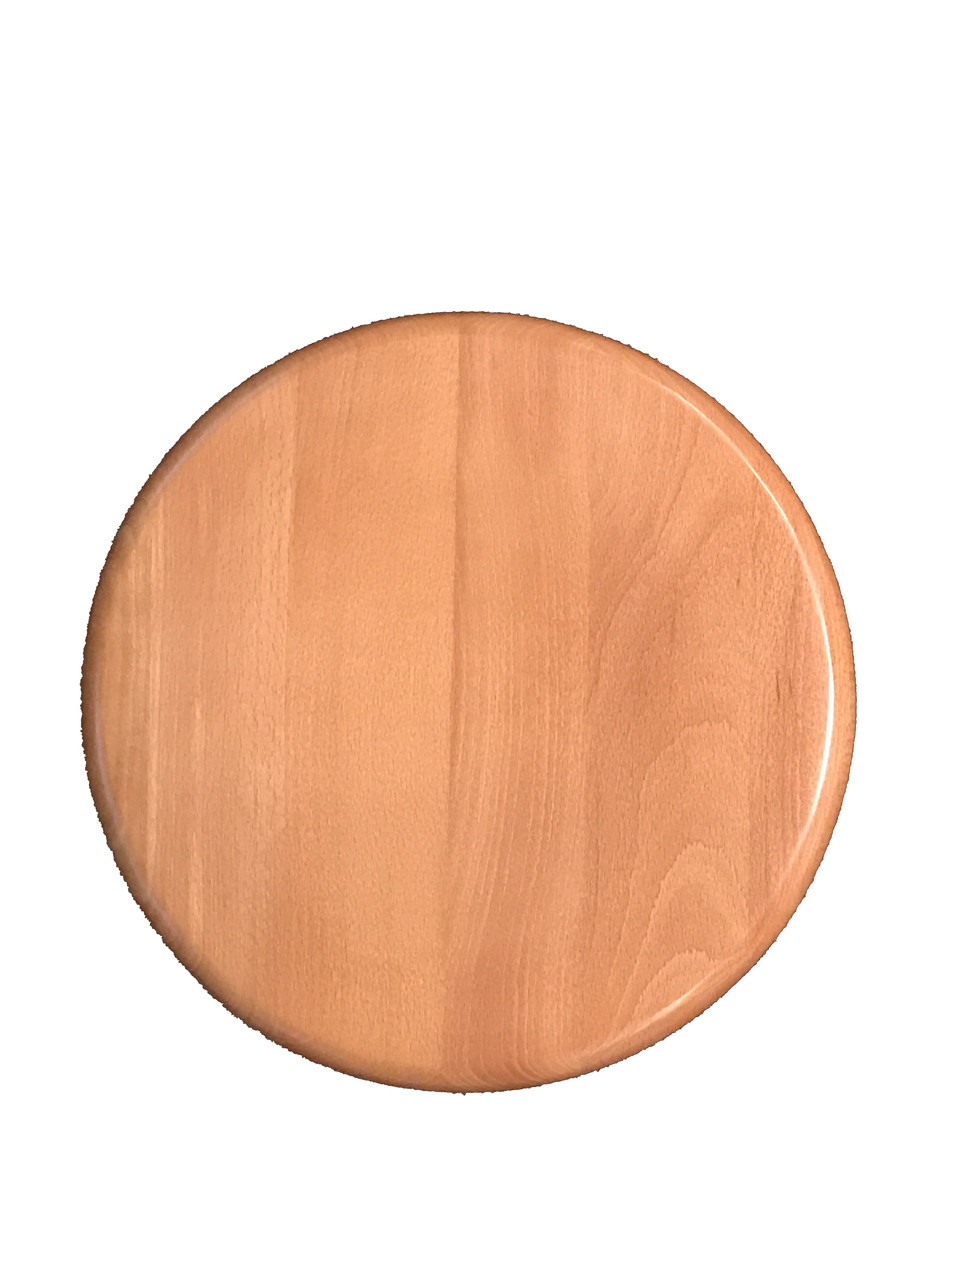 Round Wood Seats Replacement Wood Seats Seats And Stools